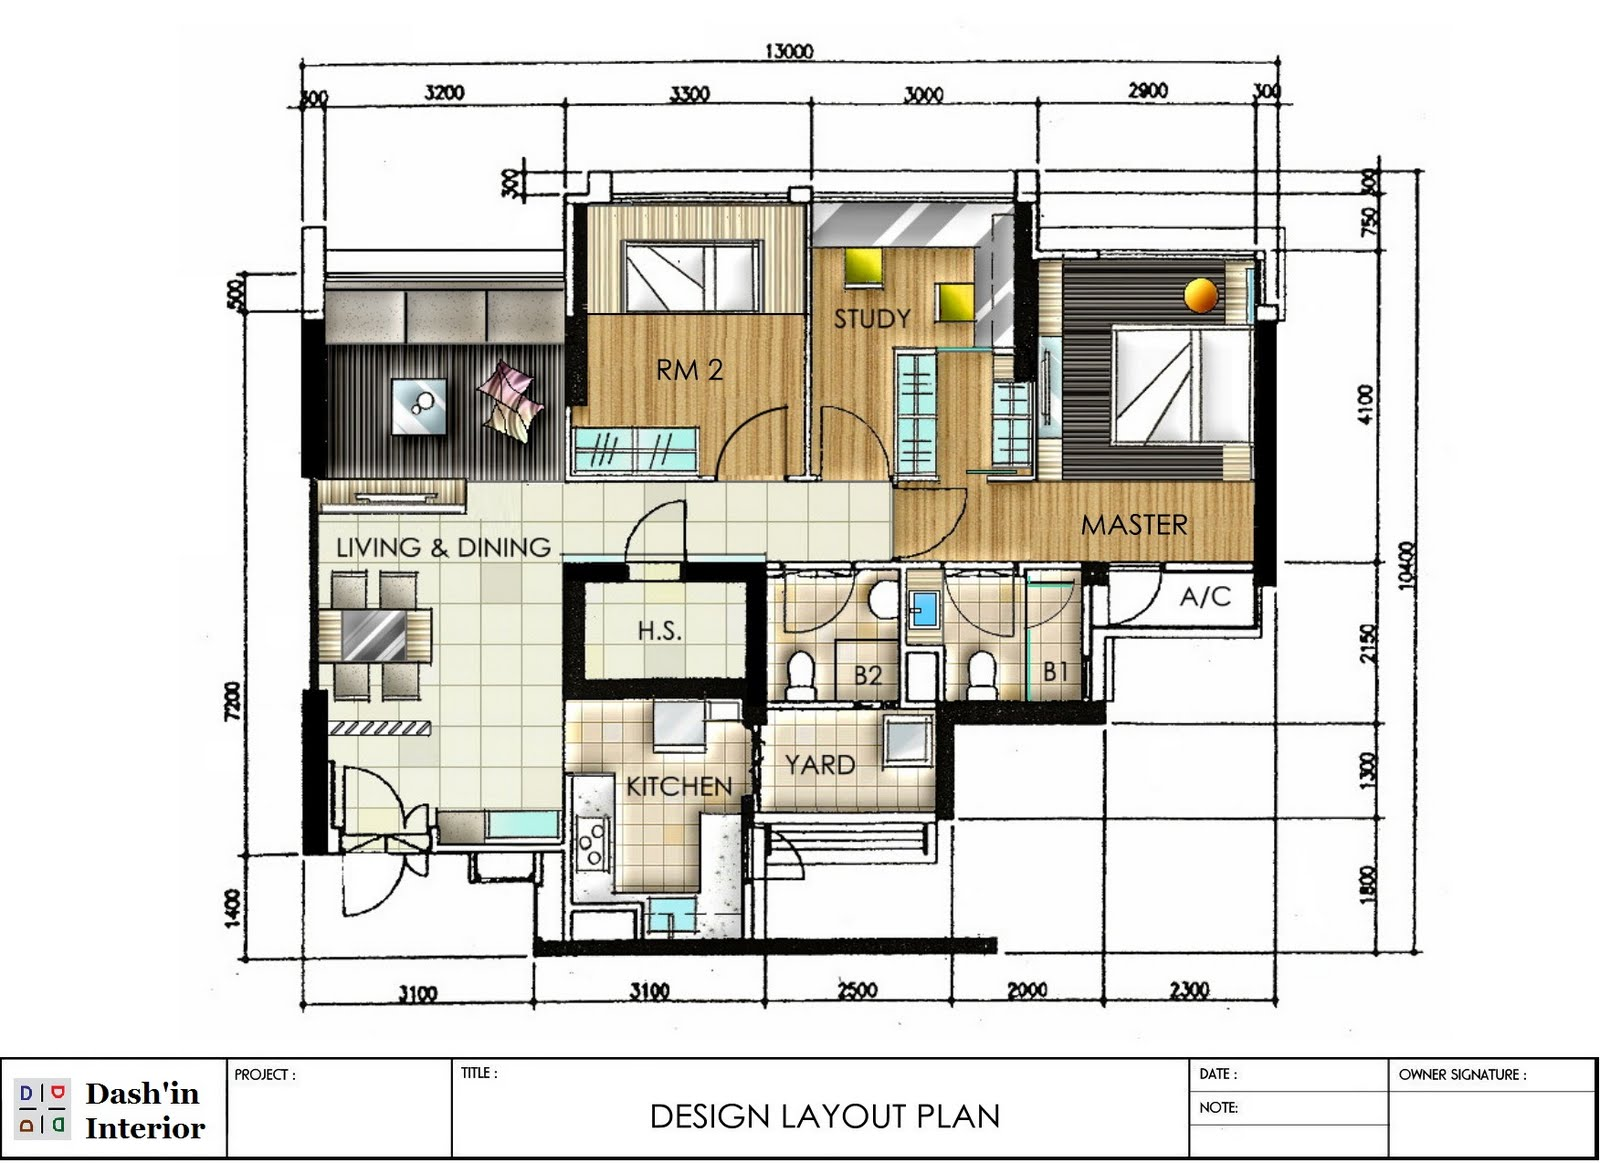 Dash 39 in interior hand drawn designs floor plan layout for Home plans with interior photos